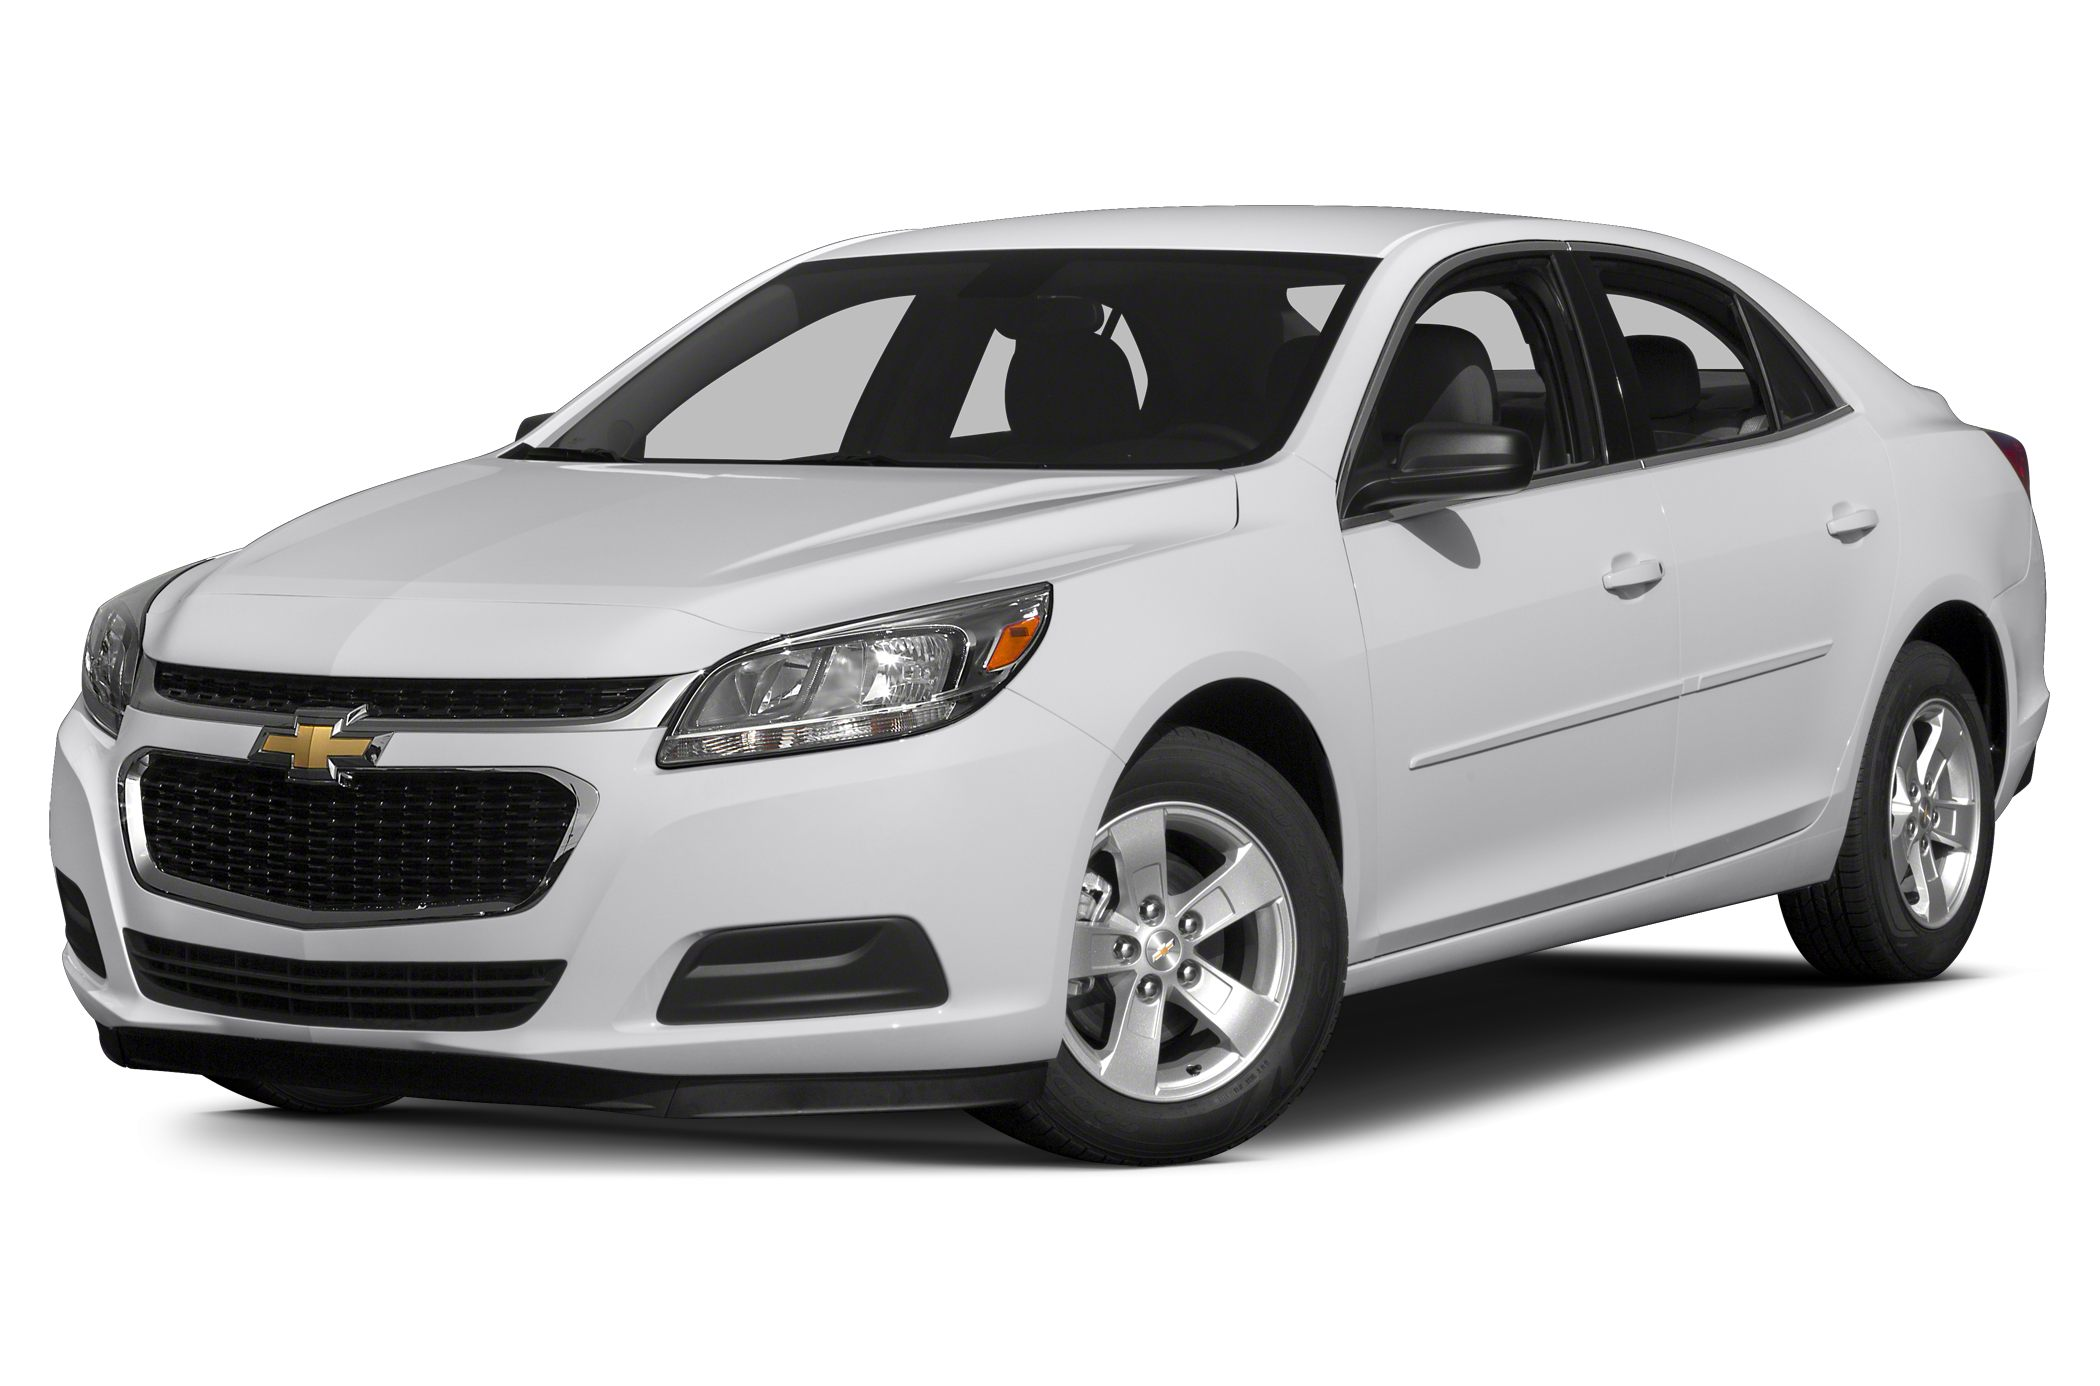 2014 Chevrolet Malibu 1LS Sedan for sale in Louisville for $19,950 with 11,424 miles